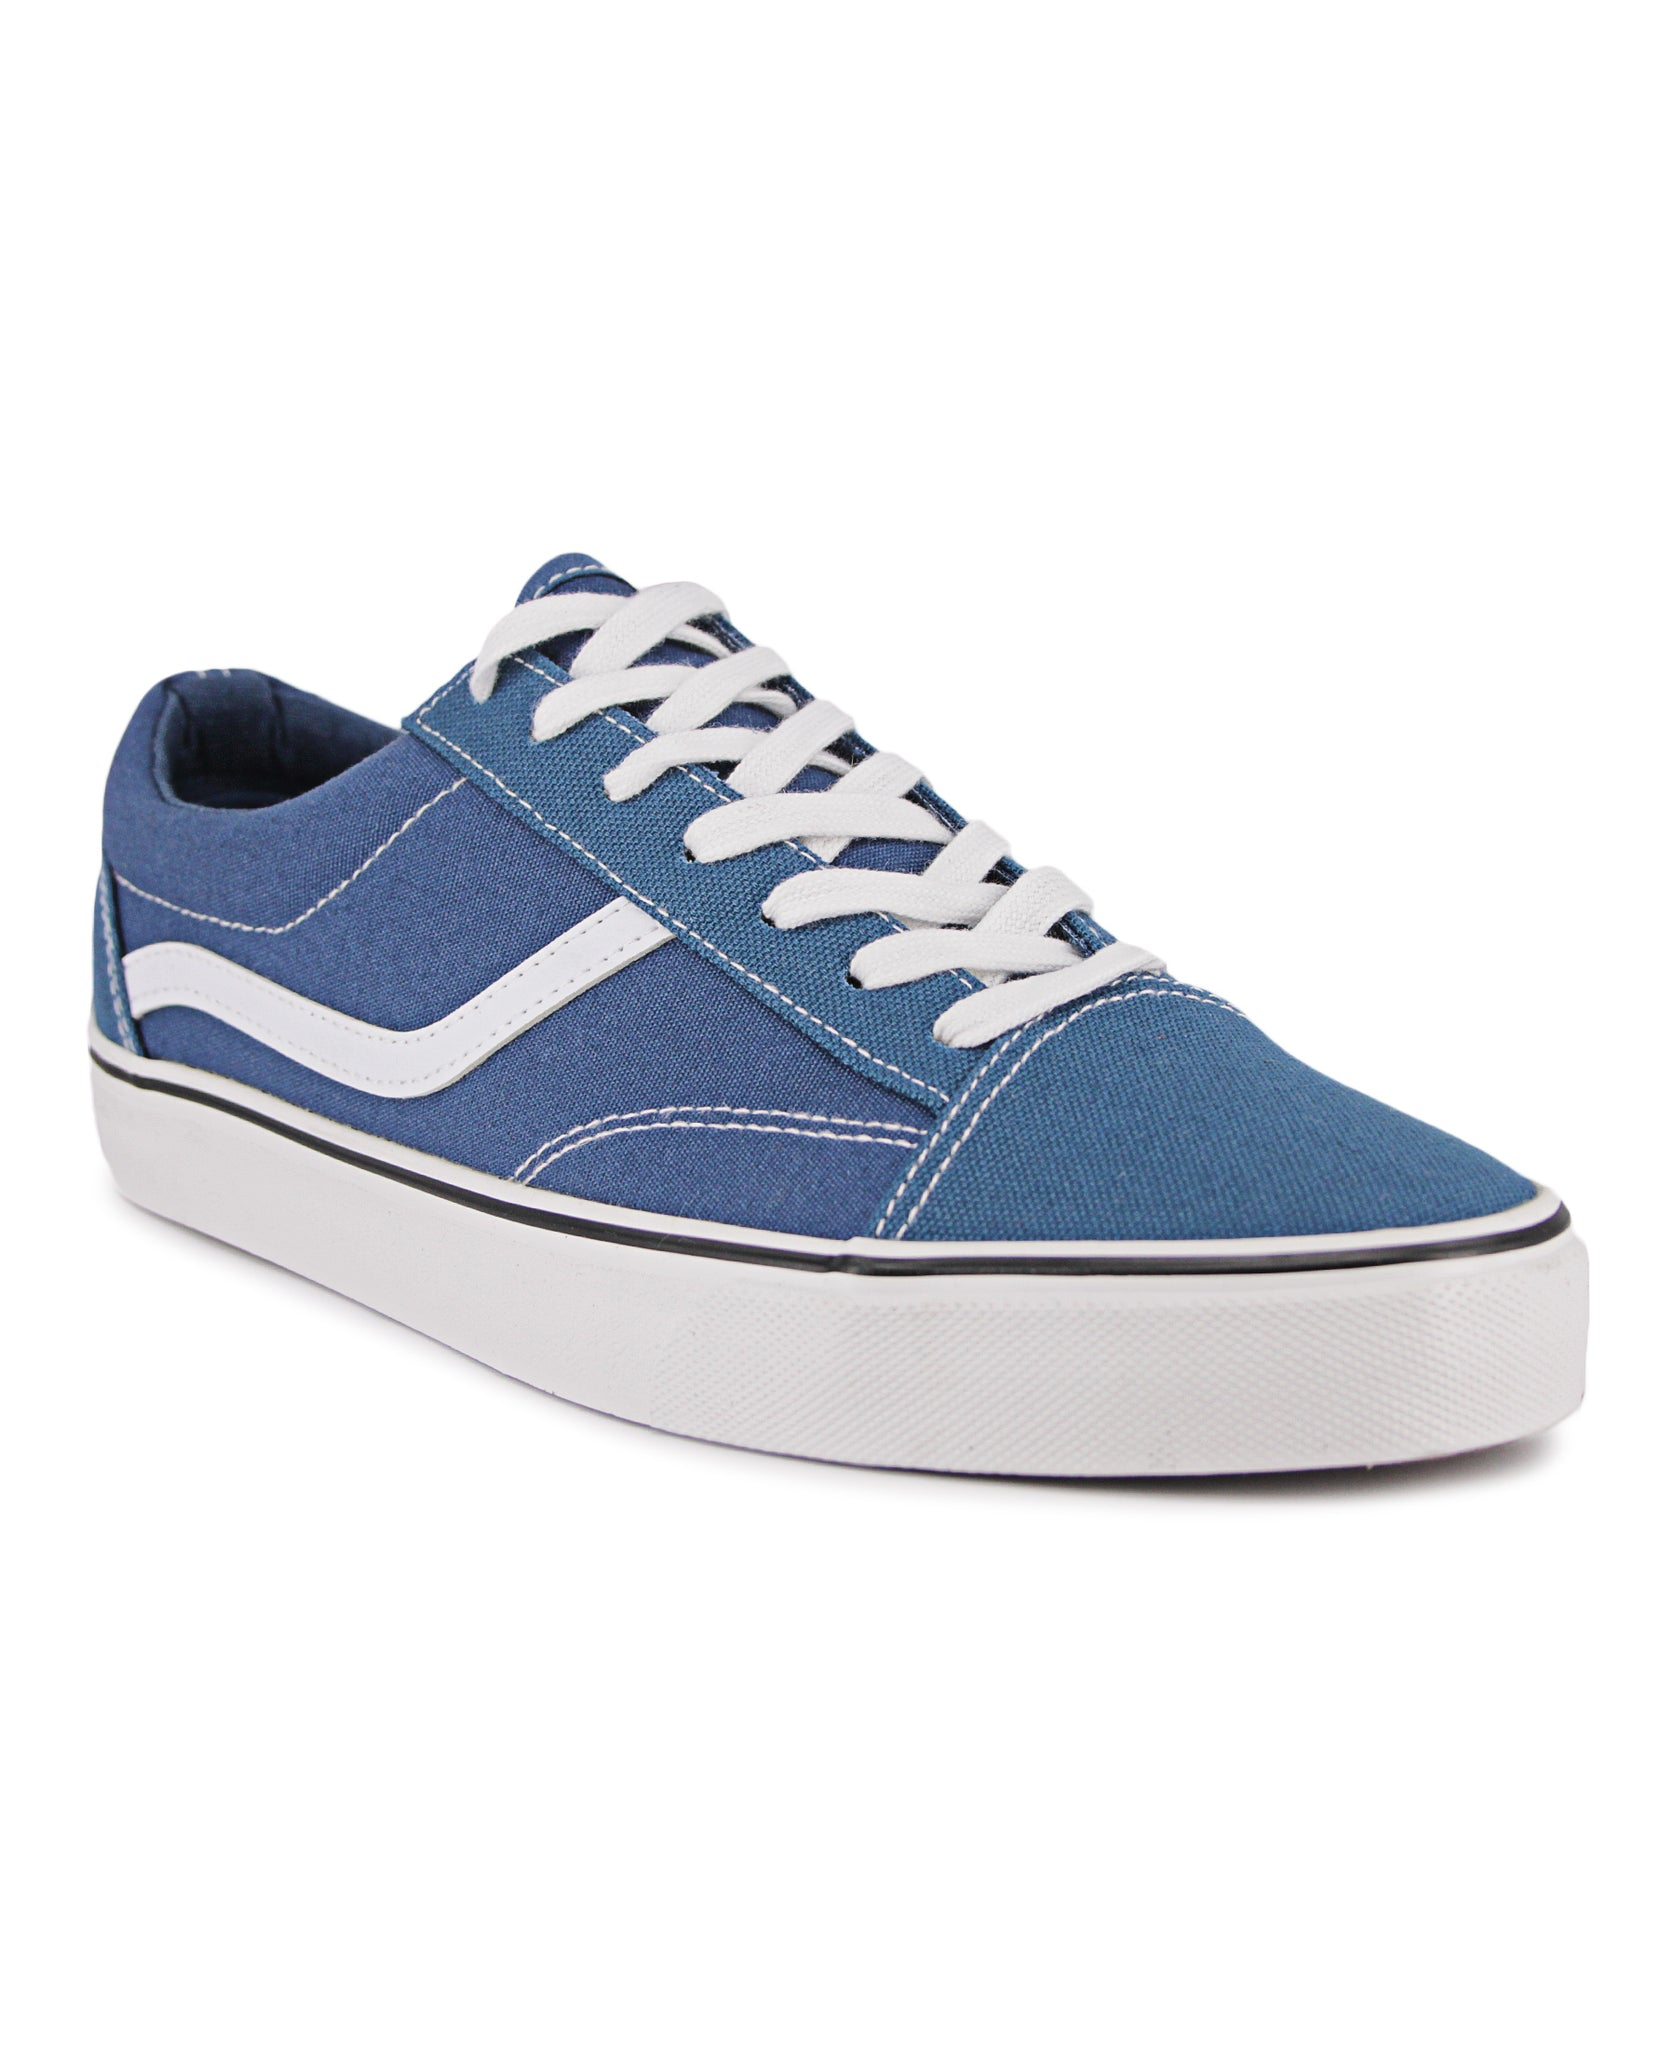 Men's Mafadi - Blue